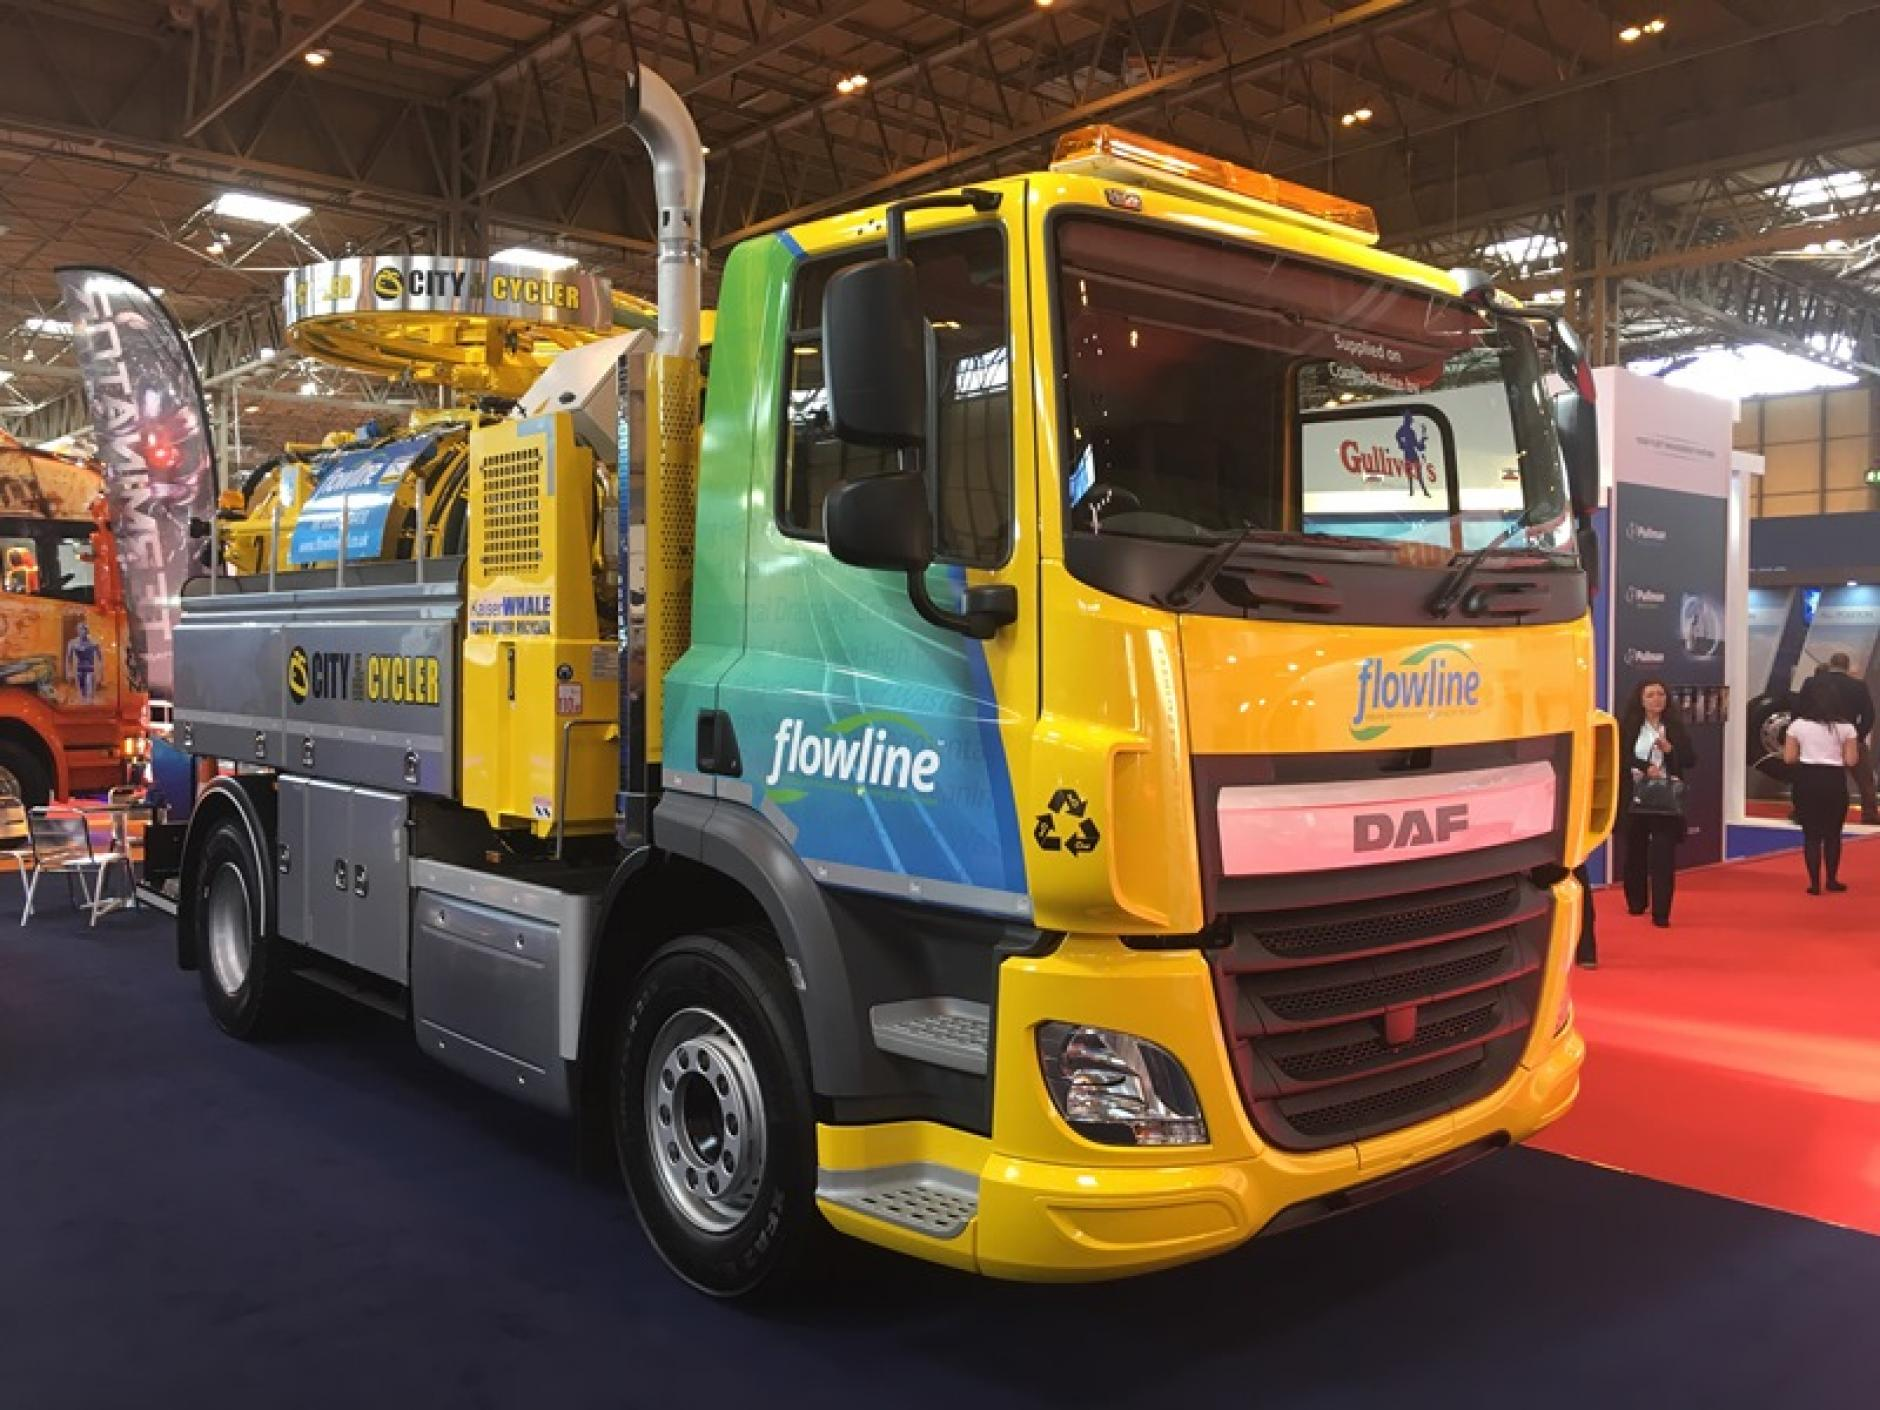 whale tankers exhibits range at cv show commercial motor solihull based whale tankers which is a long term supporter of the cv show took the opportunity to demonstrate products across all vehicle weights